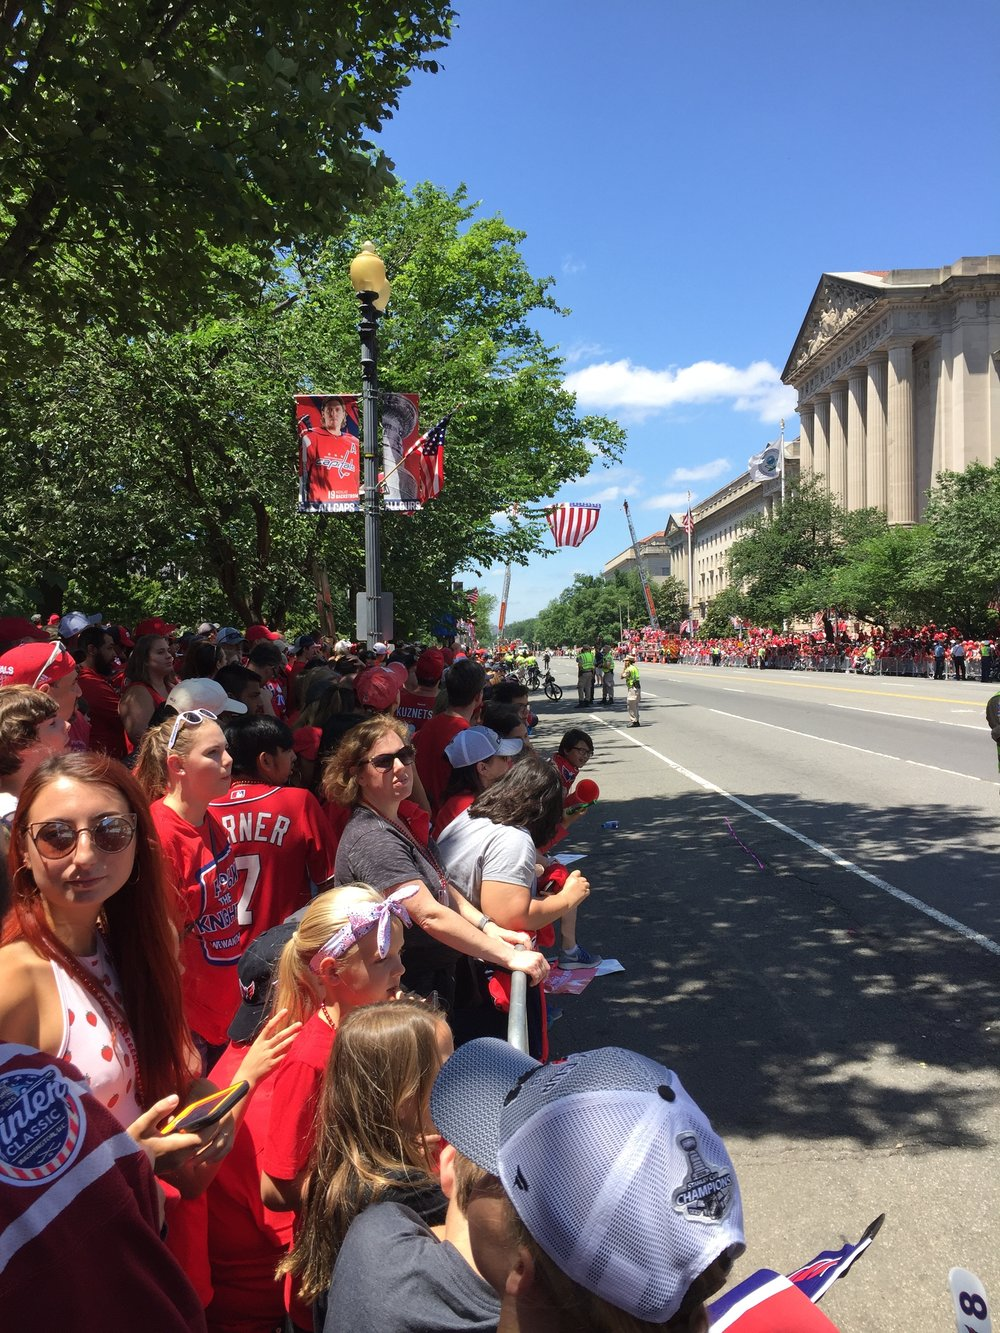 DC looked amazing! The streets were festooned with banners and flags.